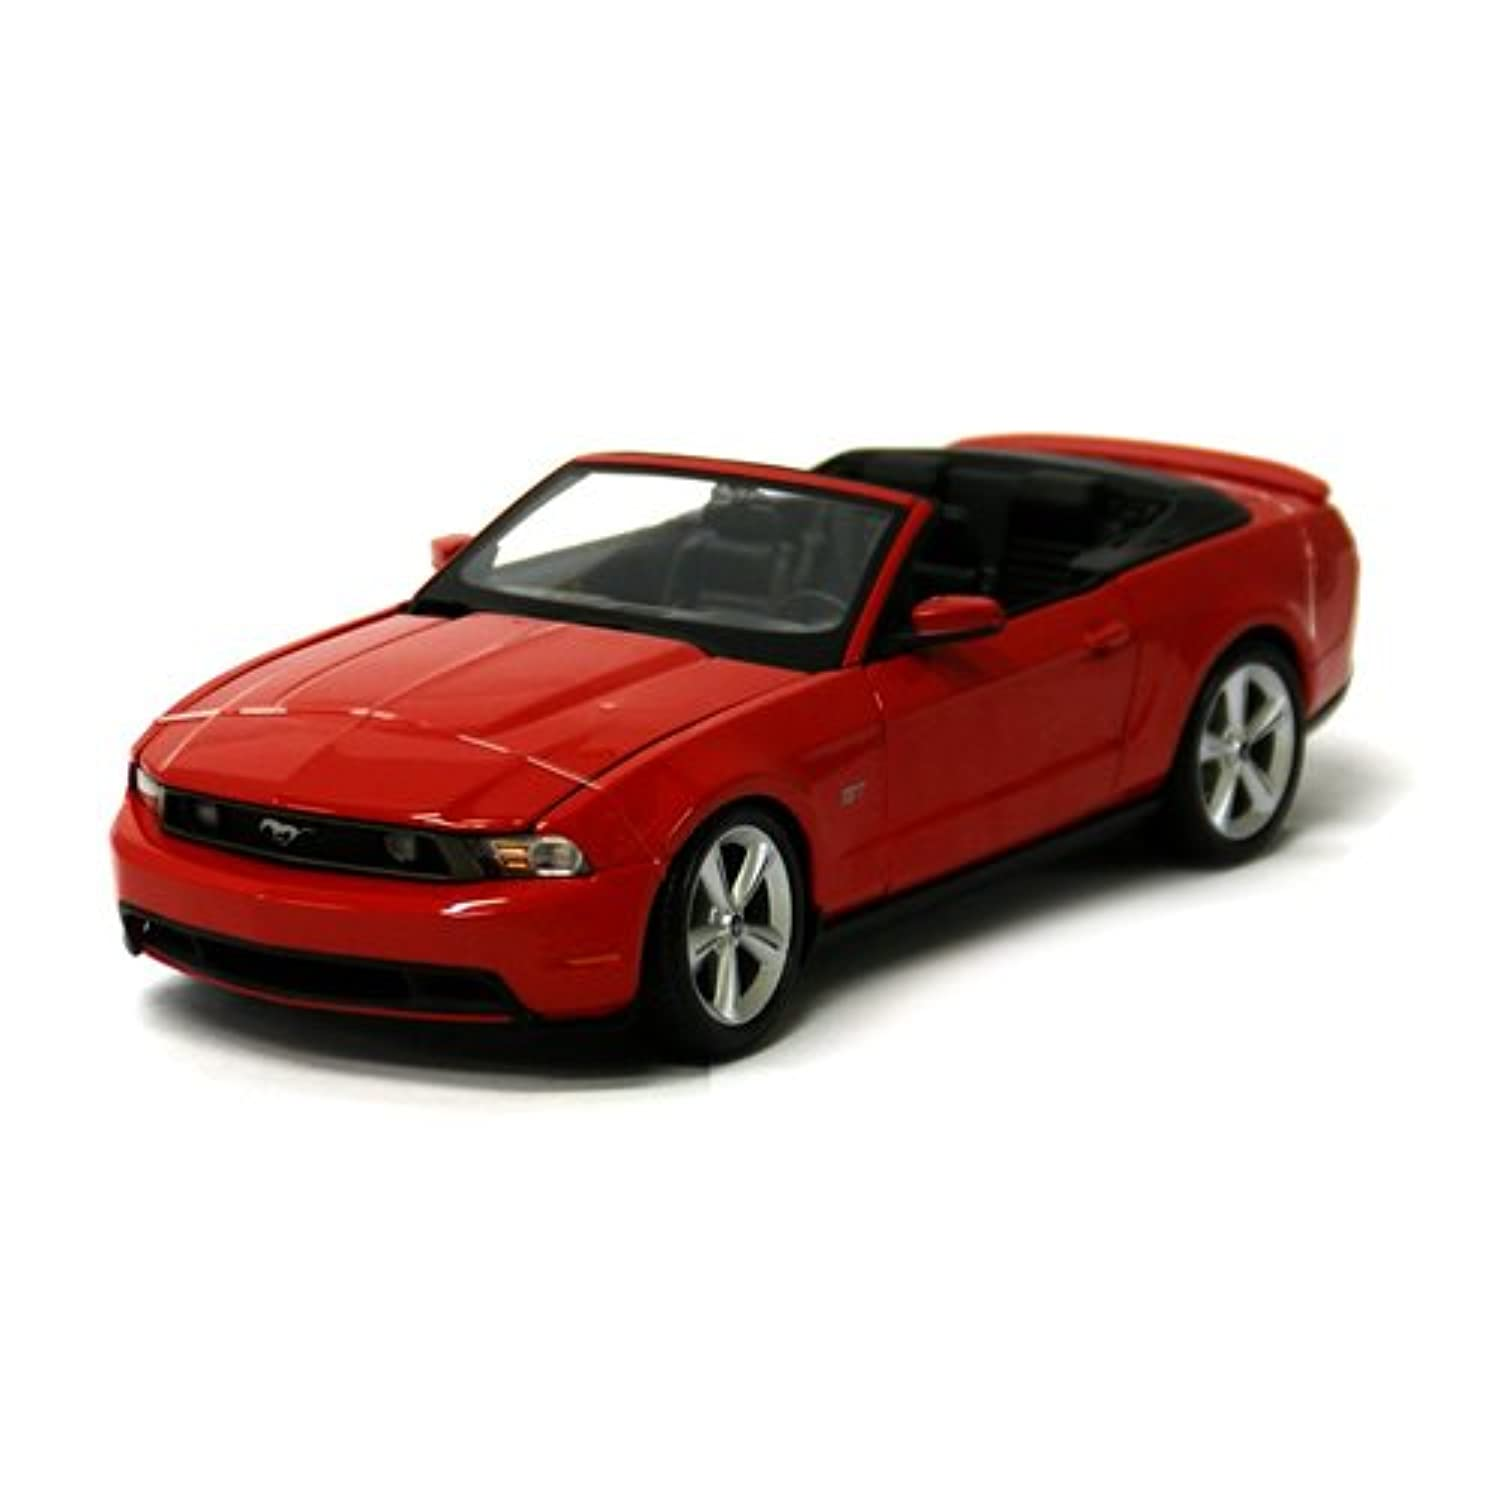 [1/18] 2010 Ford Mustang GT RED Maisto 【ダイキャストカー